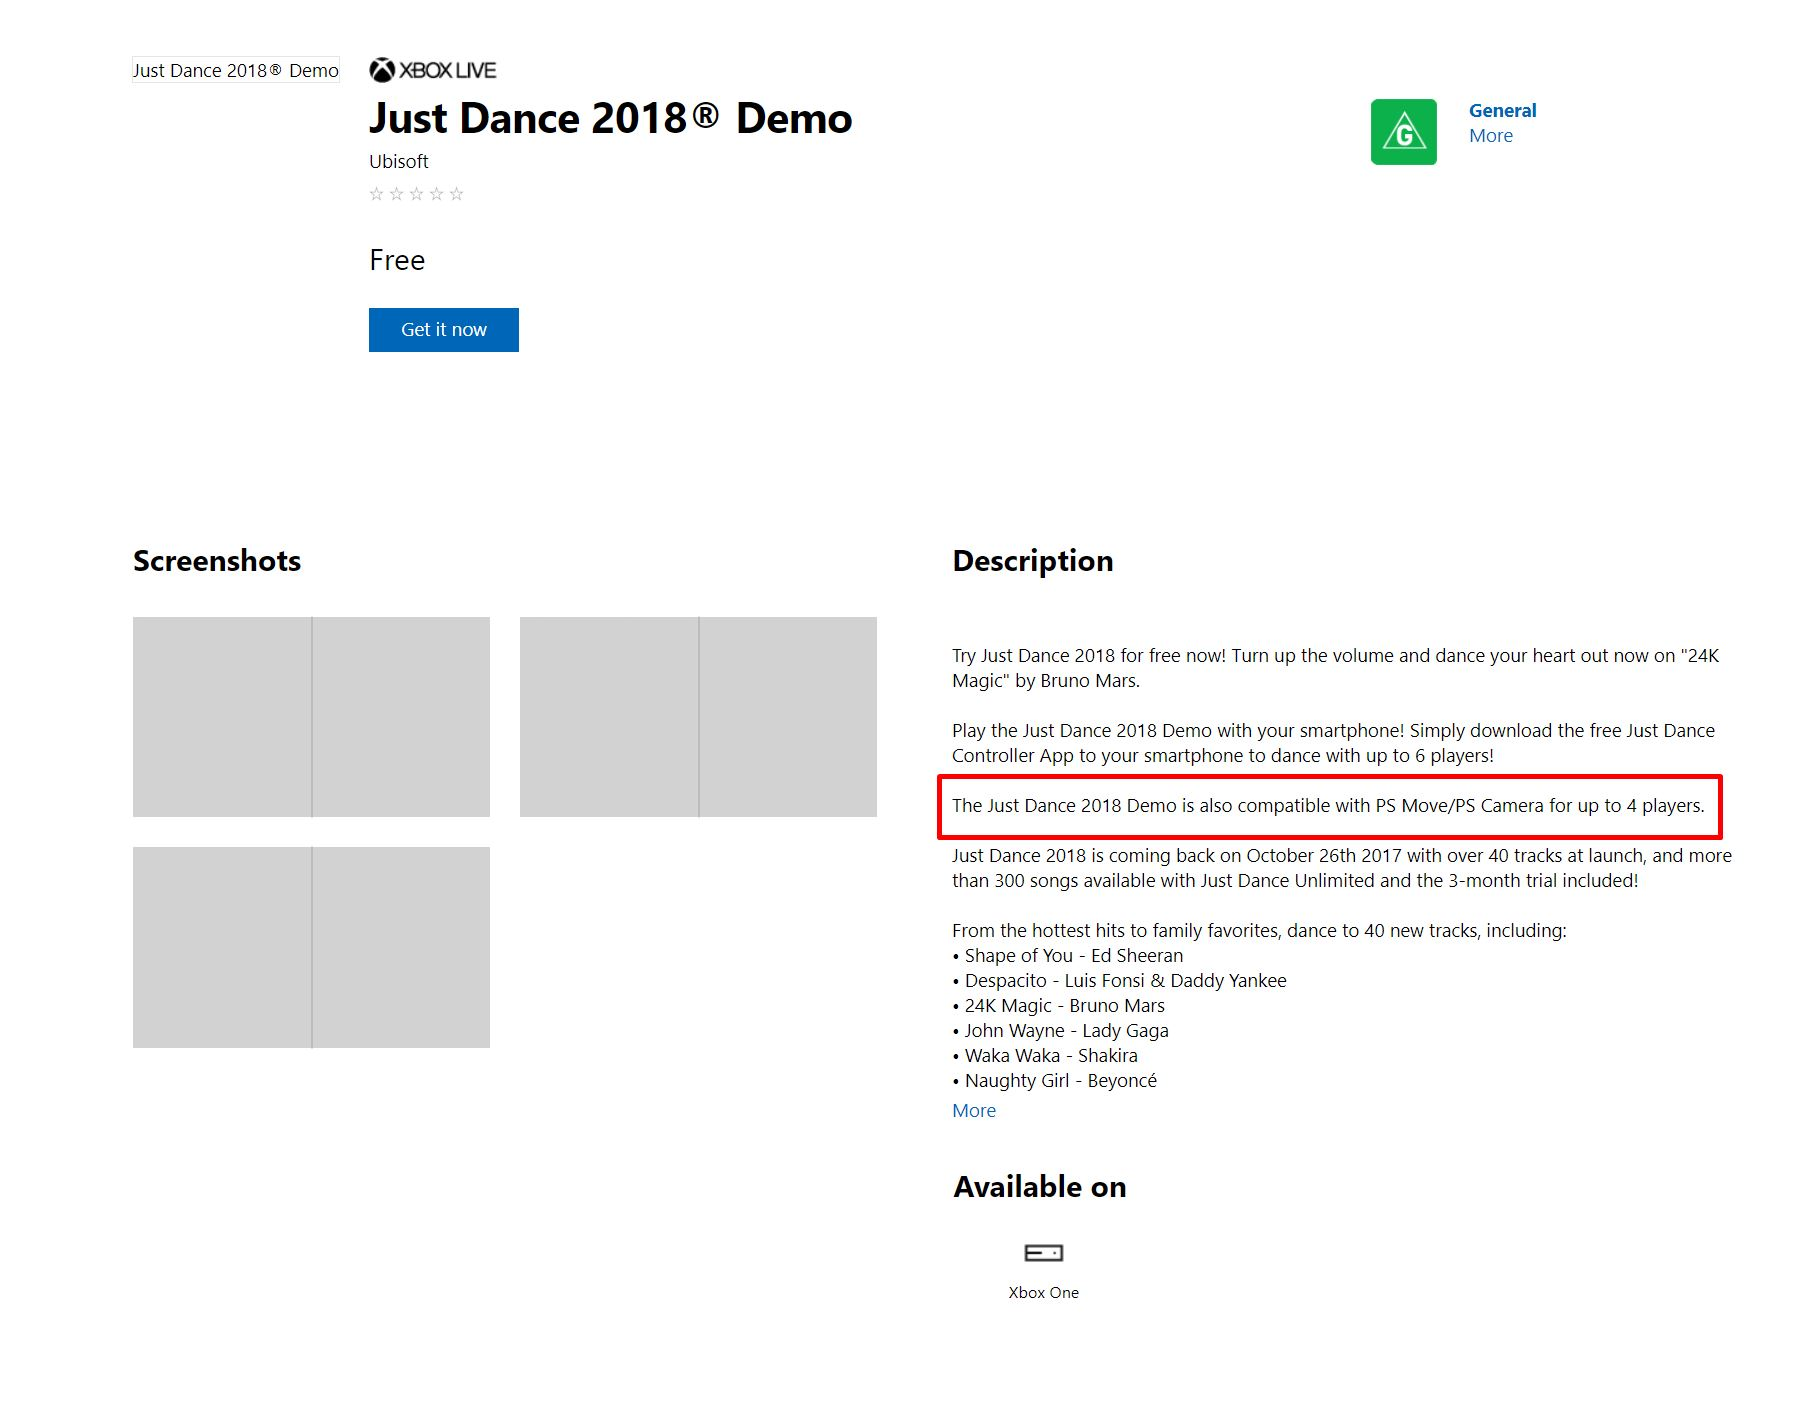 Just Dance 2018 Demo Page On Xbox One Store Hilariously